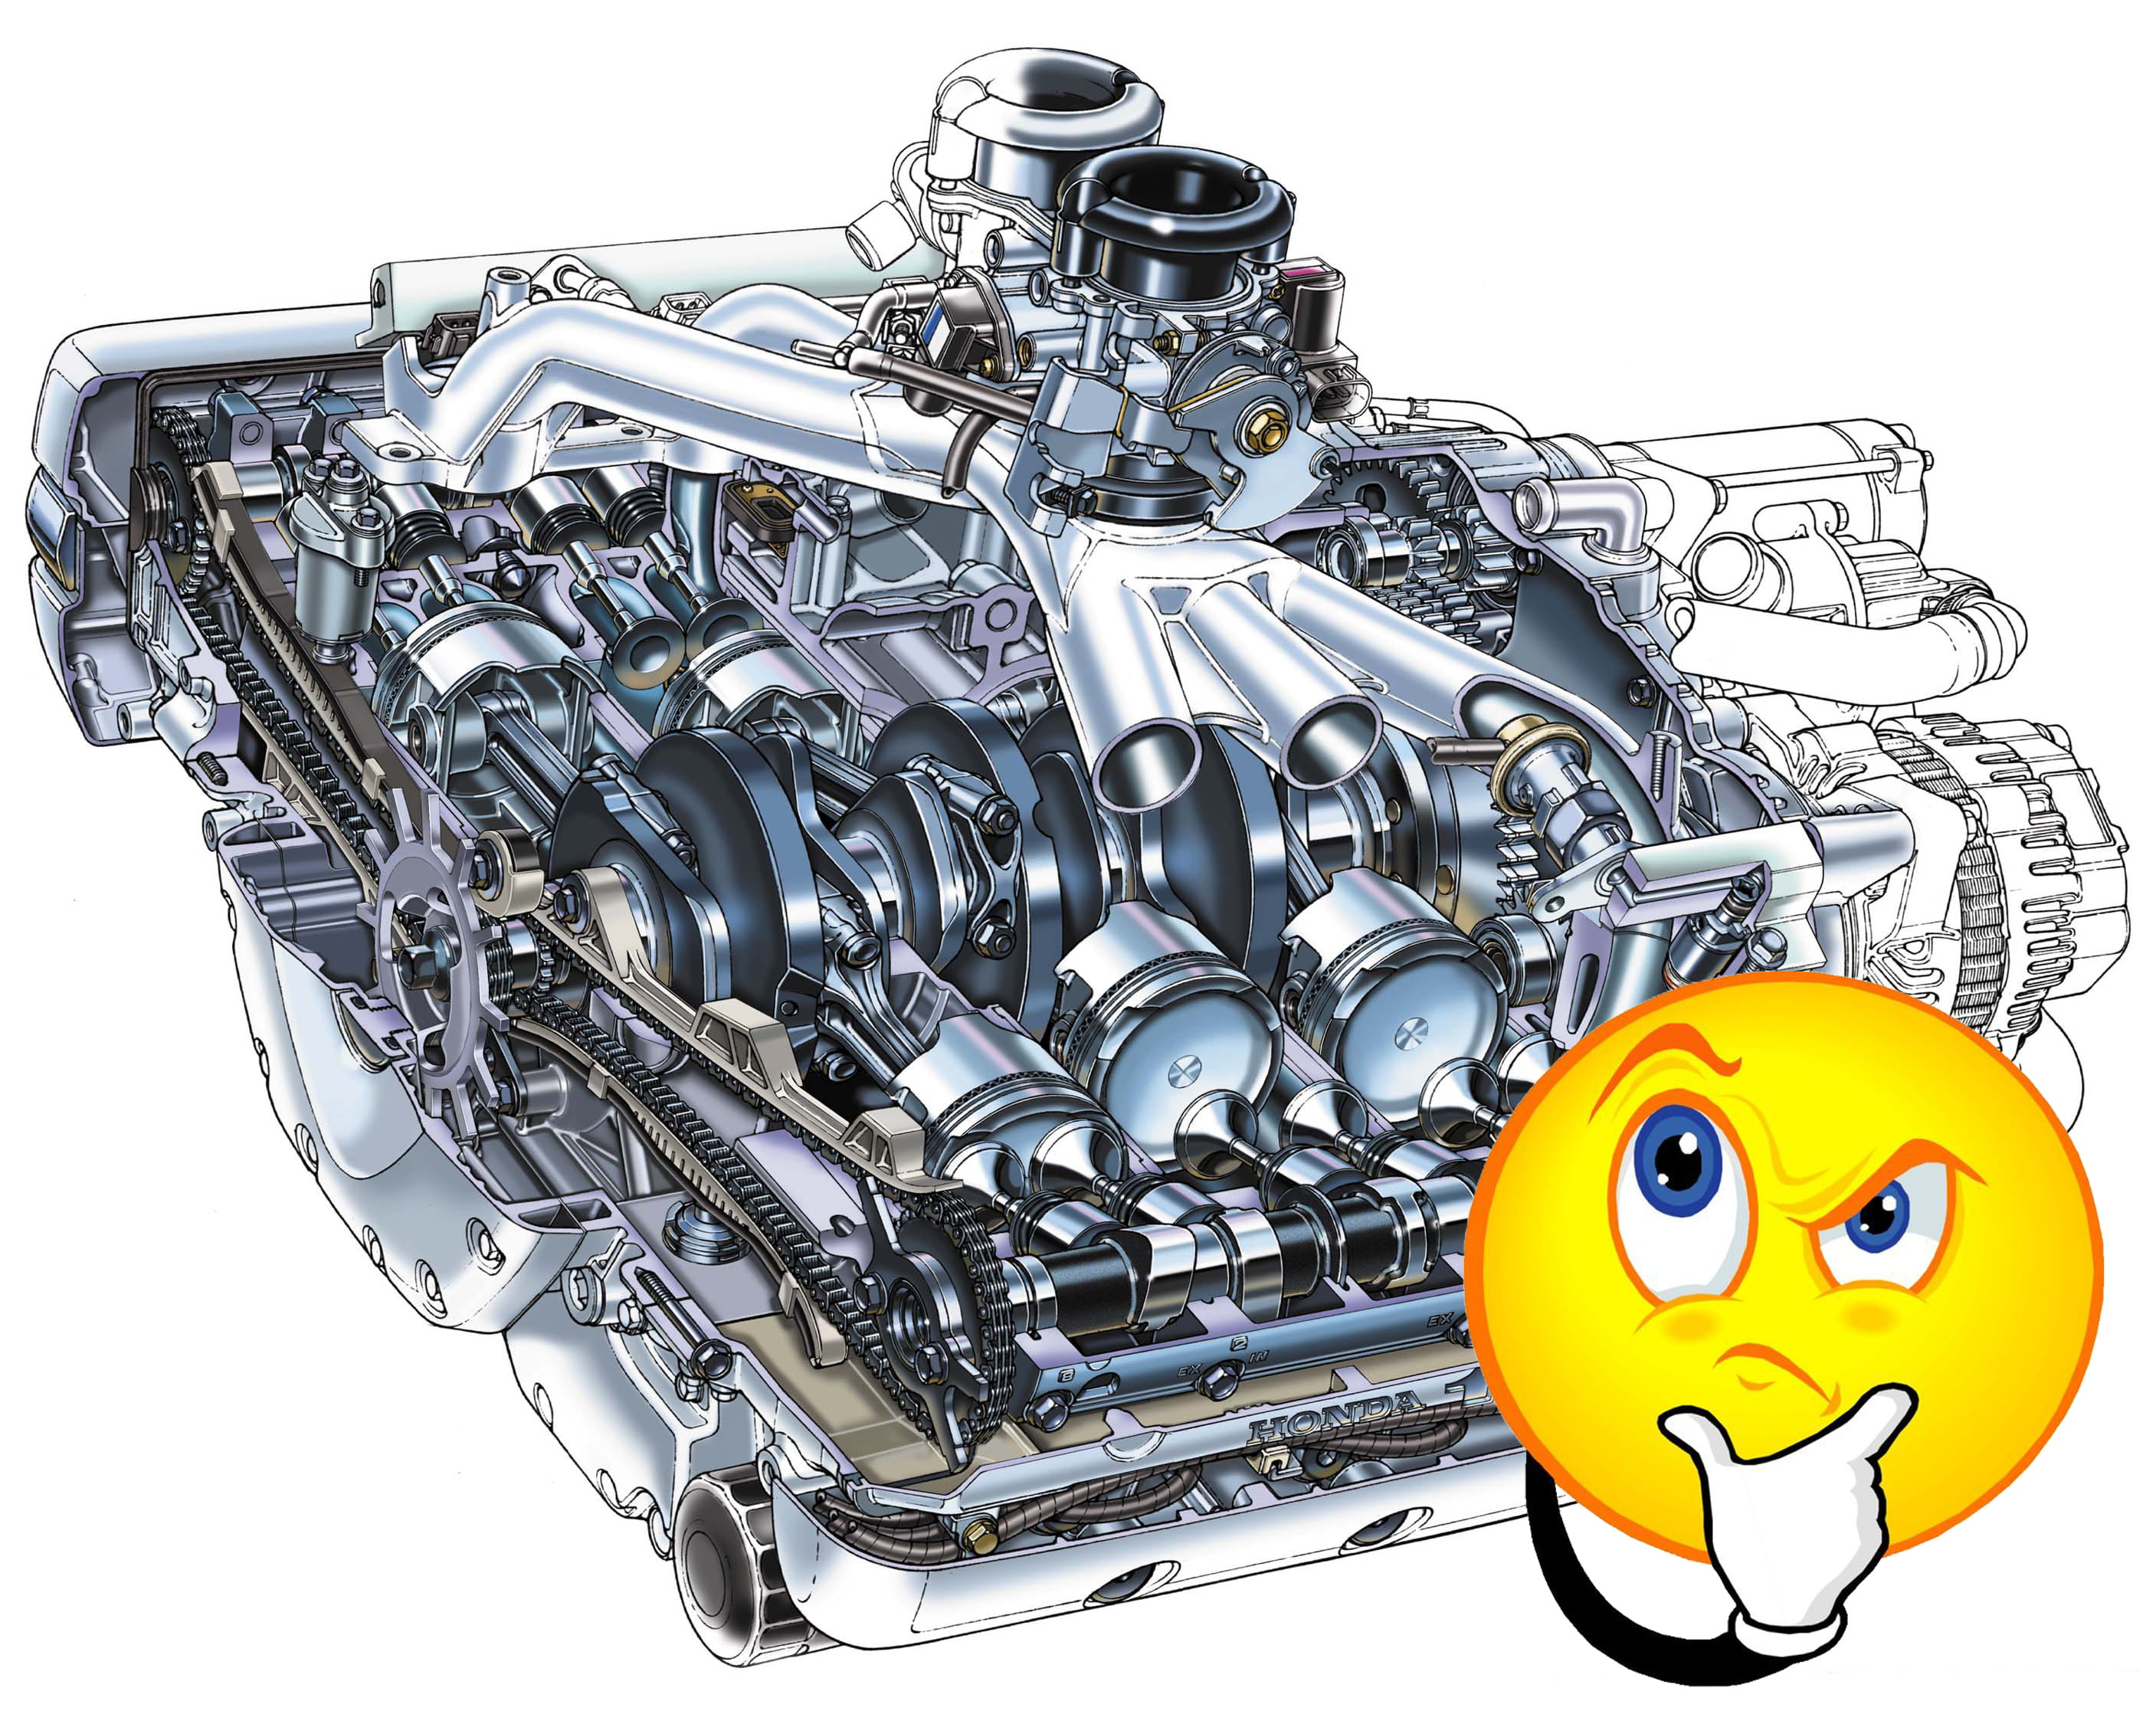 motorcycle basic engine diagram how does a motorcycle engine work  with video   diagram   how does a motorcycle engine work